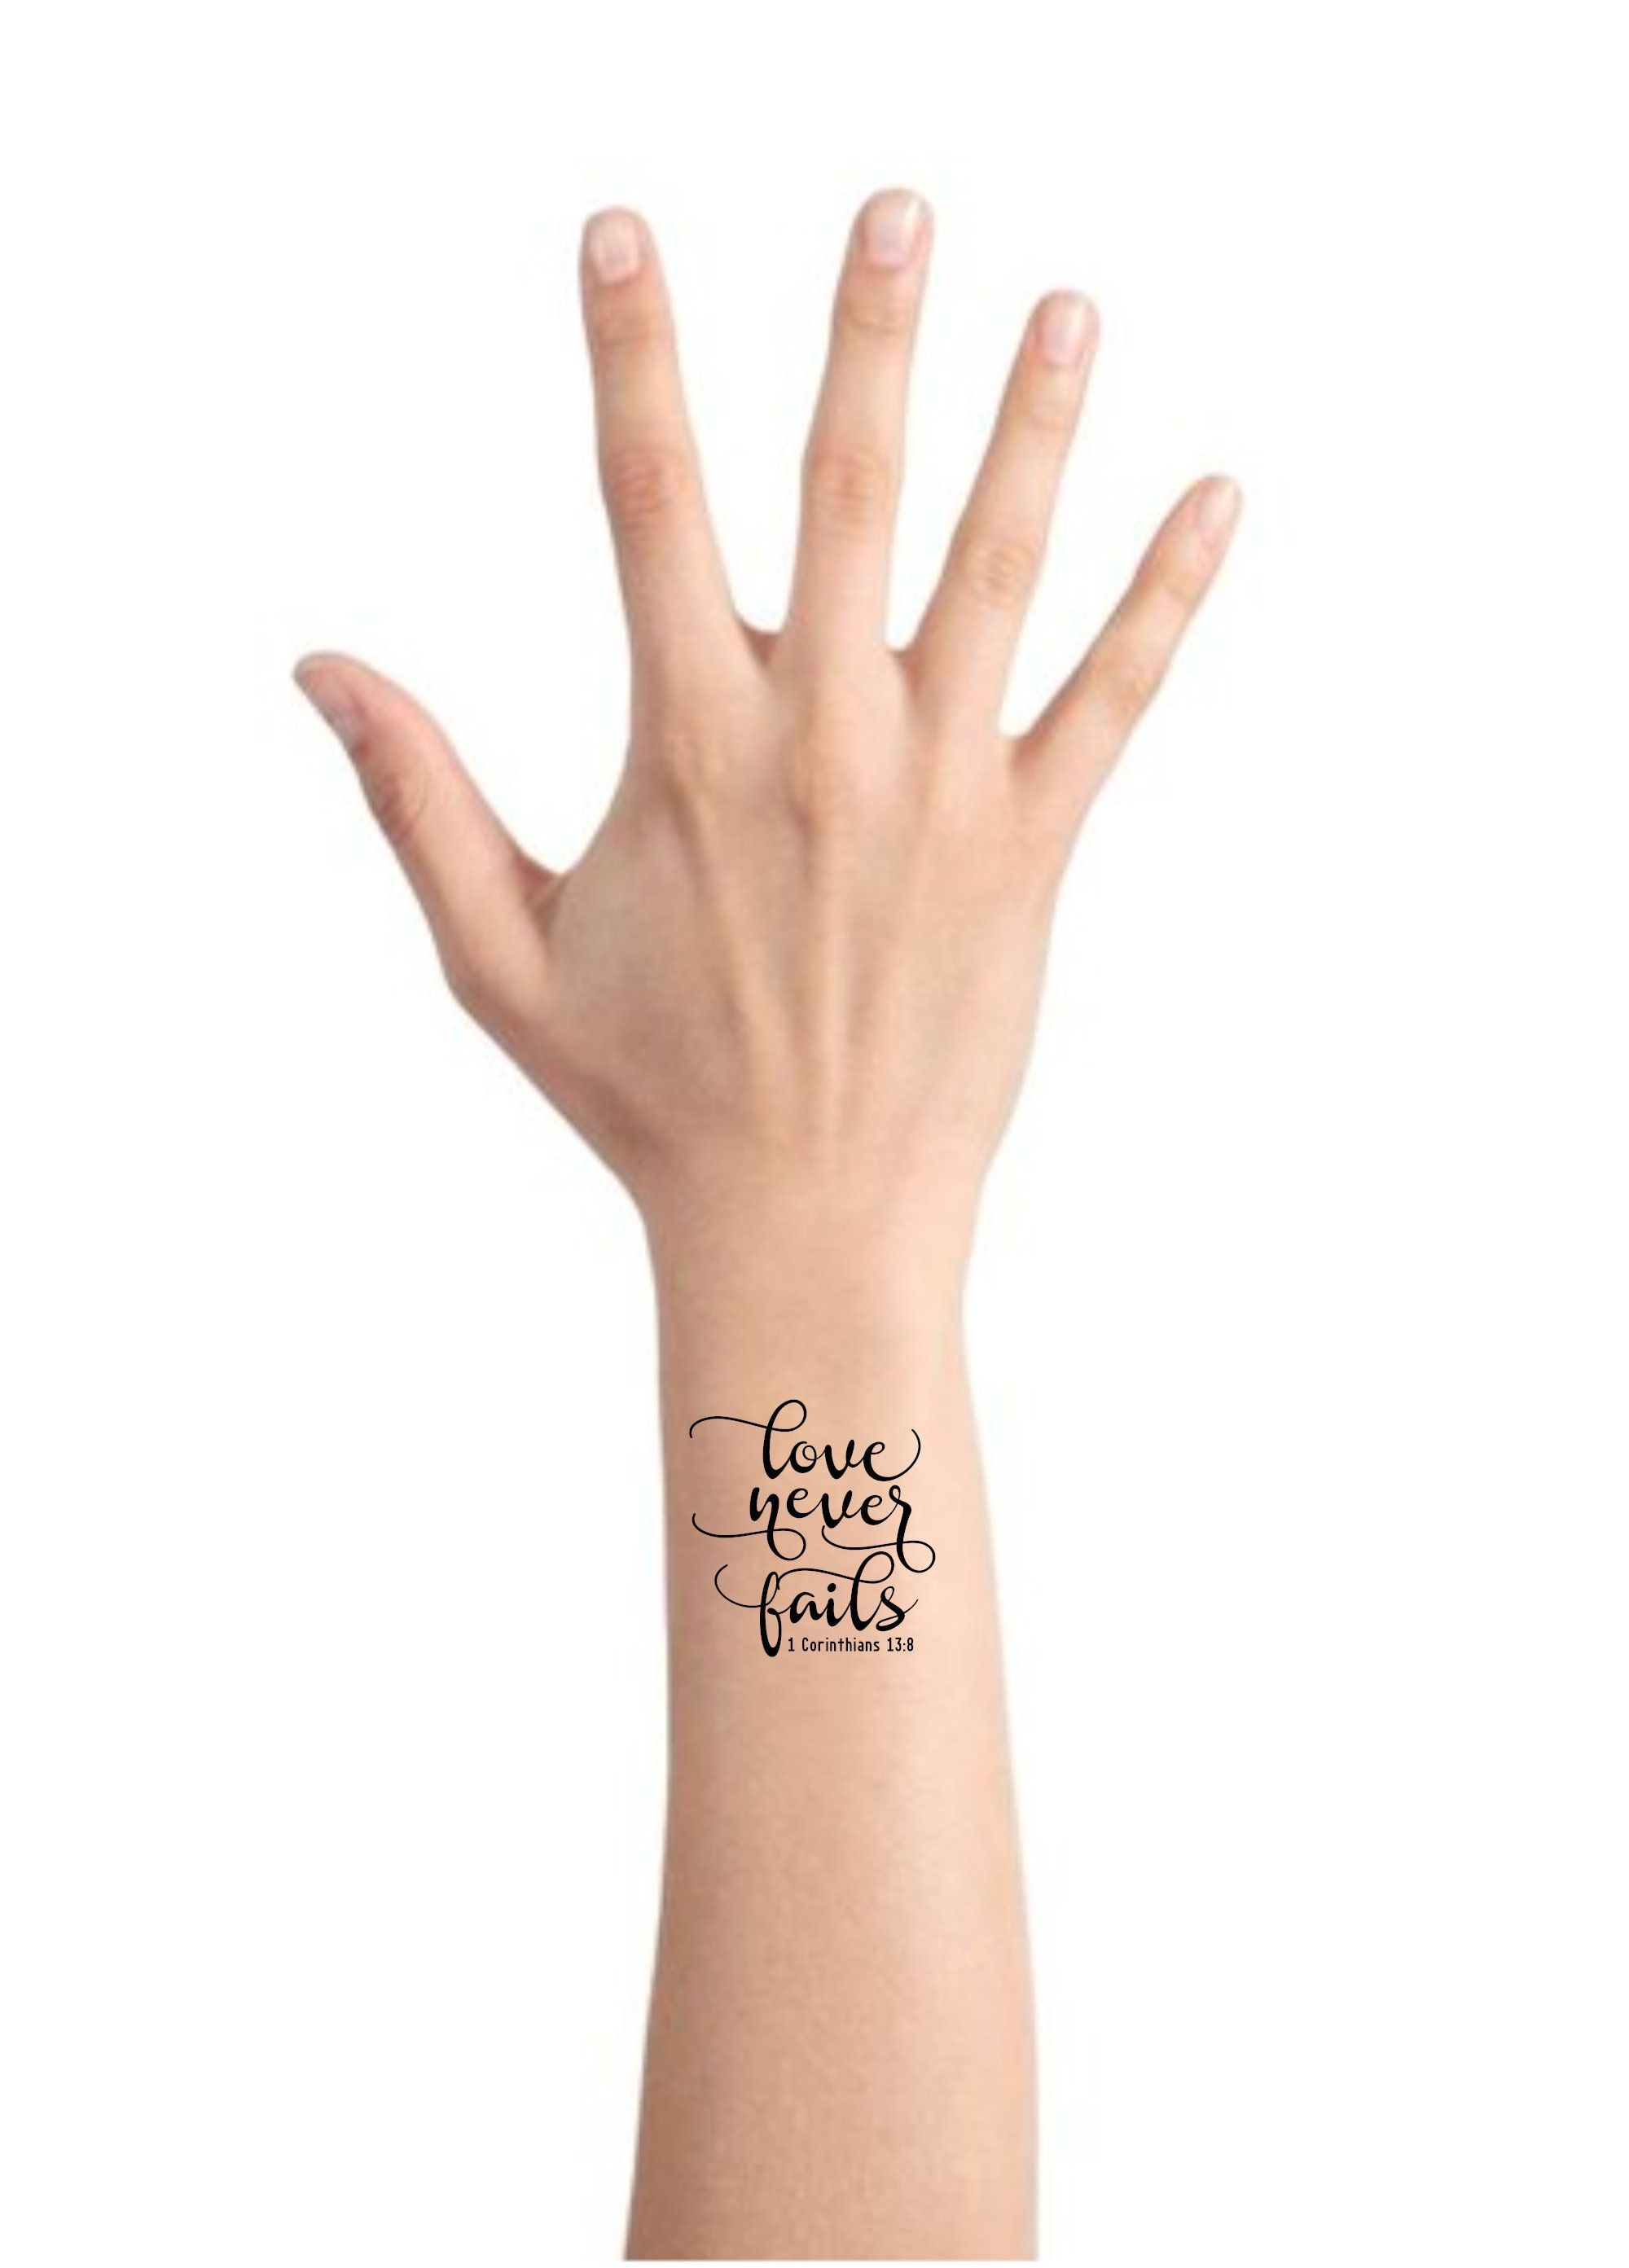 """""""One \""""Love Never Fails\"""" 1 Corinthians 13:8 bible verse temporary tattoo for women and men. SIZE: The \""""Love Never Fails\"""" temporary tattoo measures approximately 1.5\"""" x 1.75\"""" in size. Just the right size to fit in many different areas such as wrist, arm, ankle, etc. WHAT YOU GET: You will receive 1 tattoo shown in the photo. BizzyBeeGraphics produces high-quality temporary tattoos that will last about a week. HOW TO APPLY: You only need a damp cloth or paper towel to apply your temporary tat"""